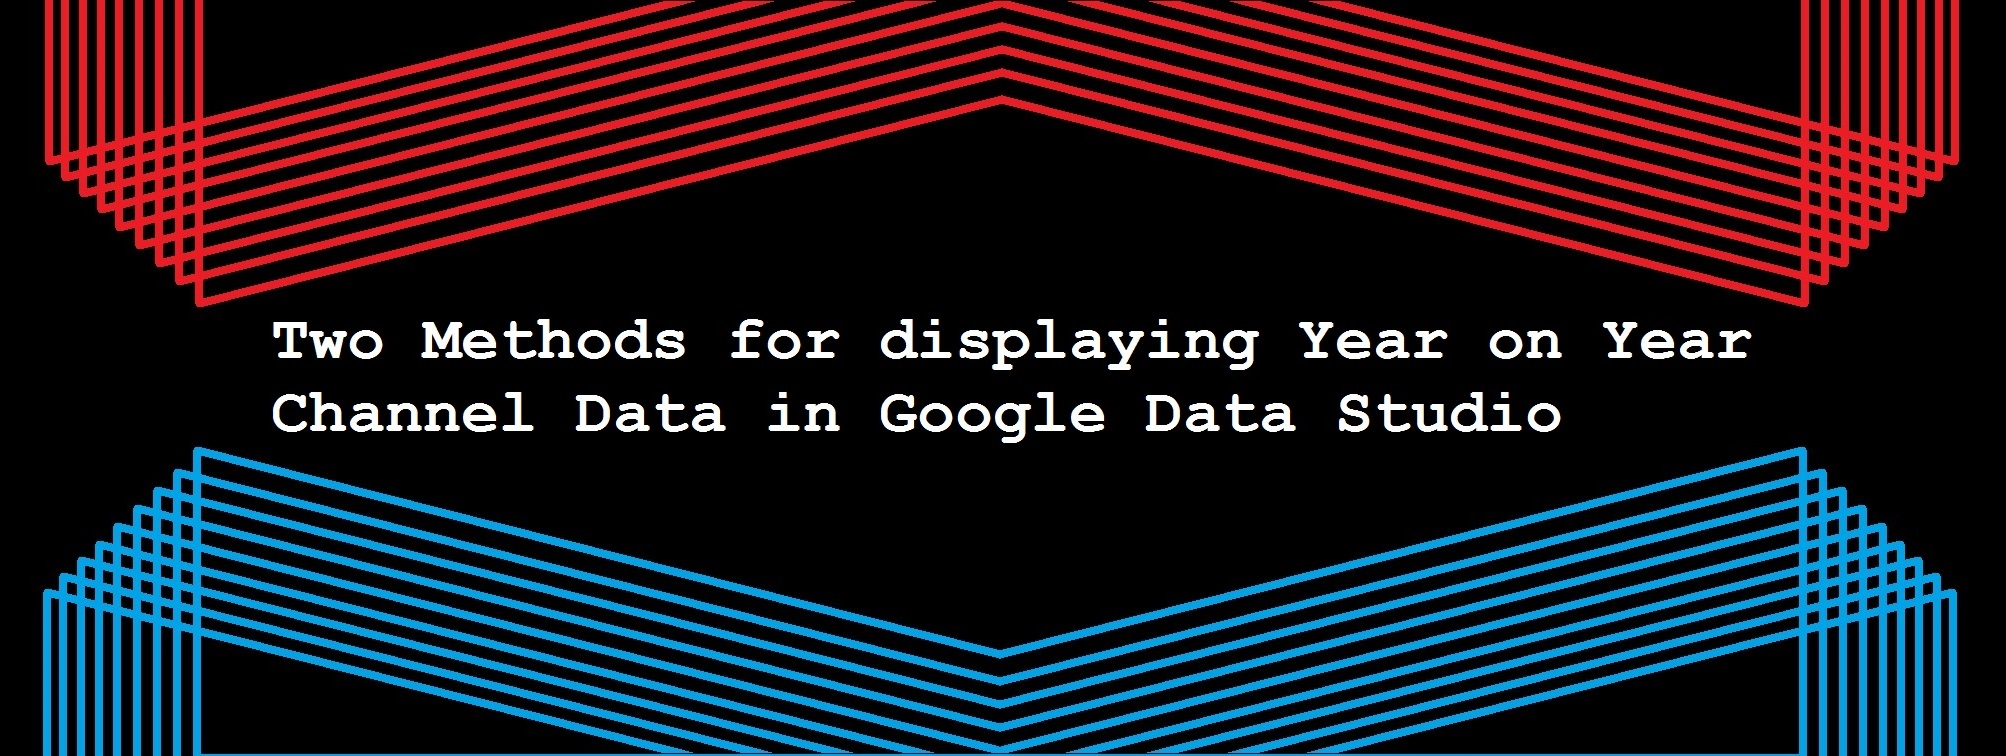 Two Methods for displaying Year on Year Channel Data in Google Data Studio